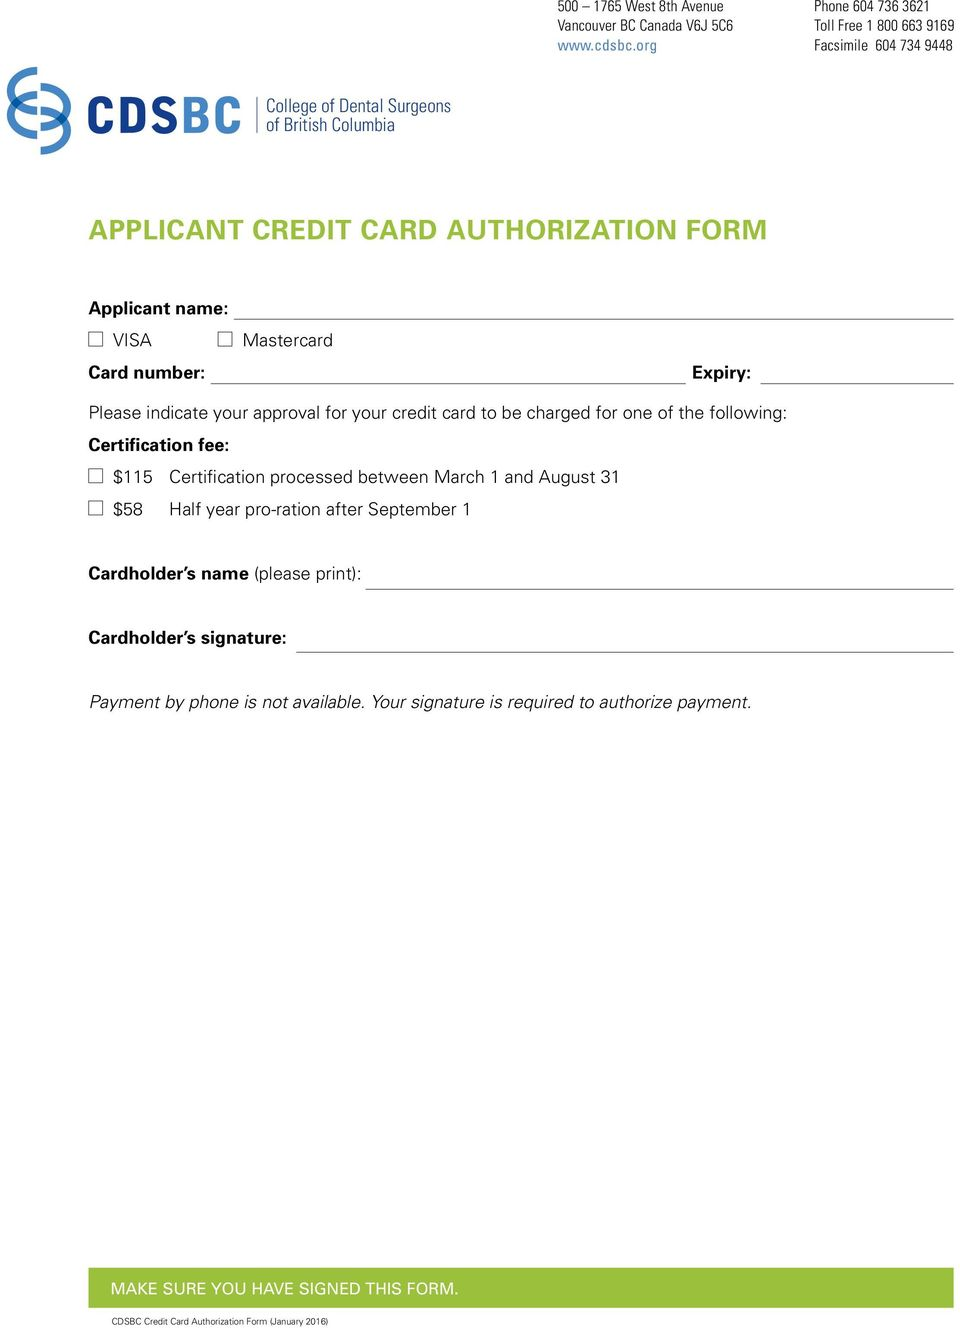 Mastercard Expiry: Please indicate your approval for your credit card to be charged for one of the following: Certification fee: $115 Certification processed between March 1